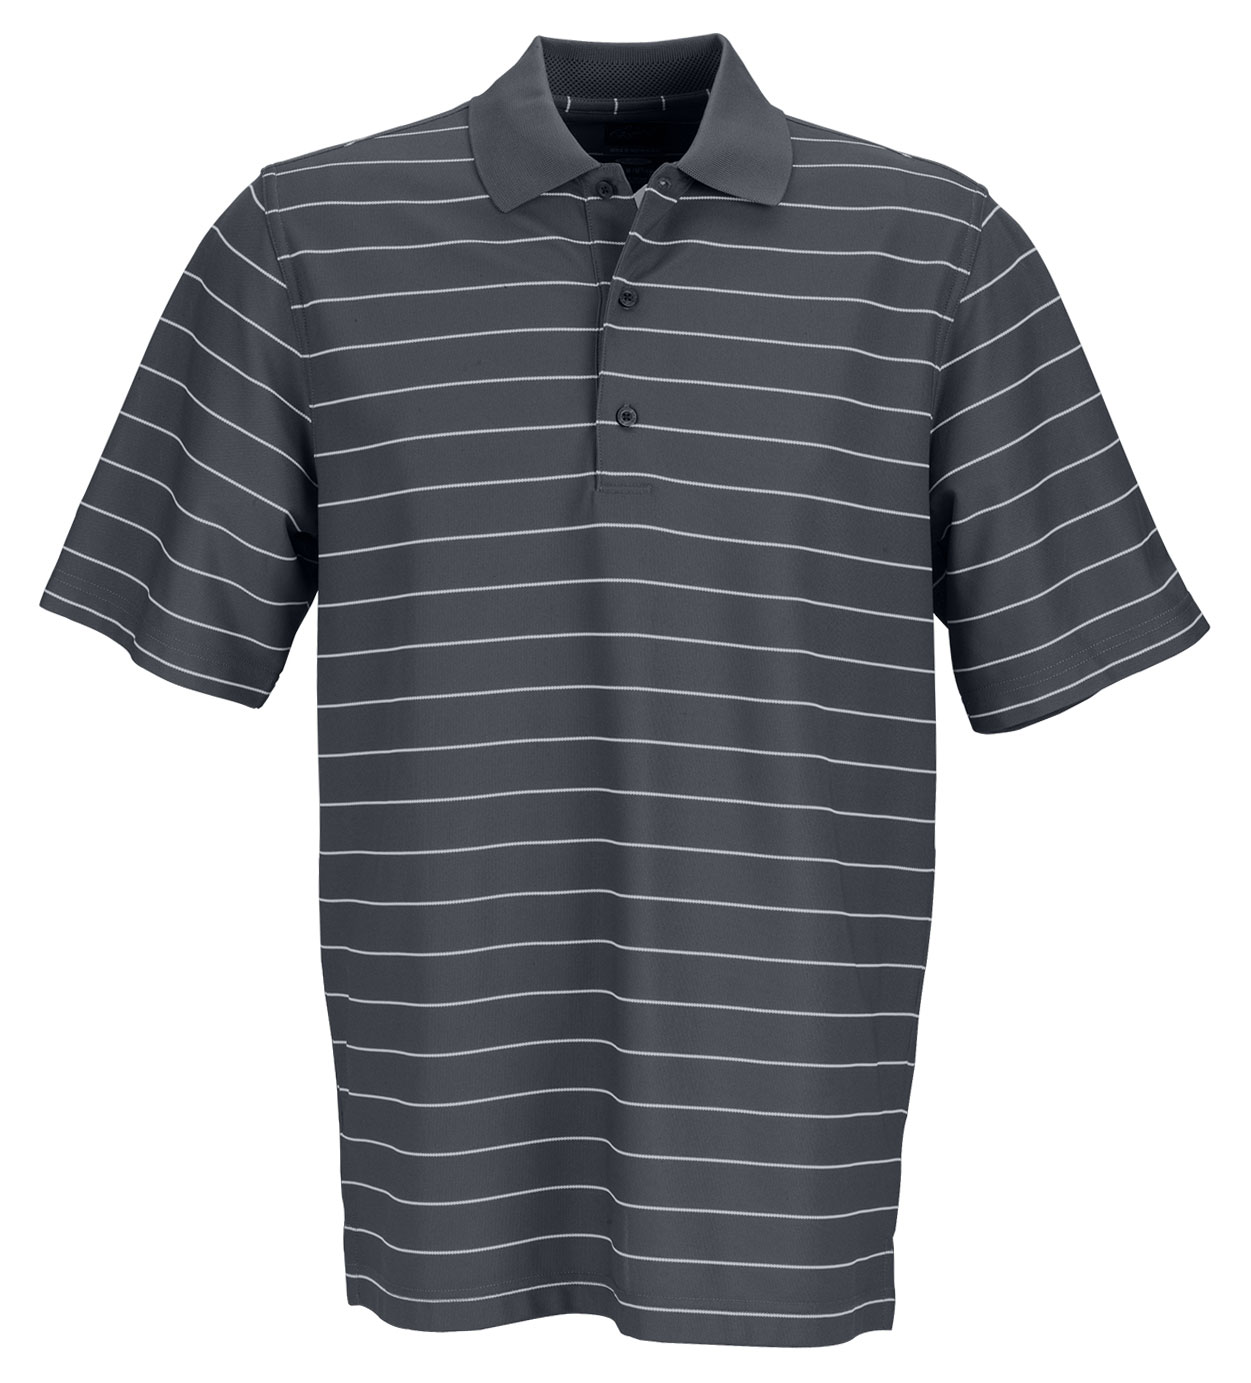 Greg Norman Mens Play Dry Performance Striped Mesh Polo